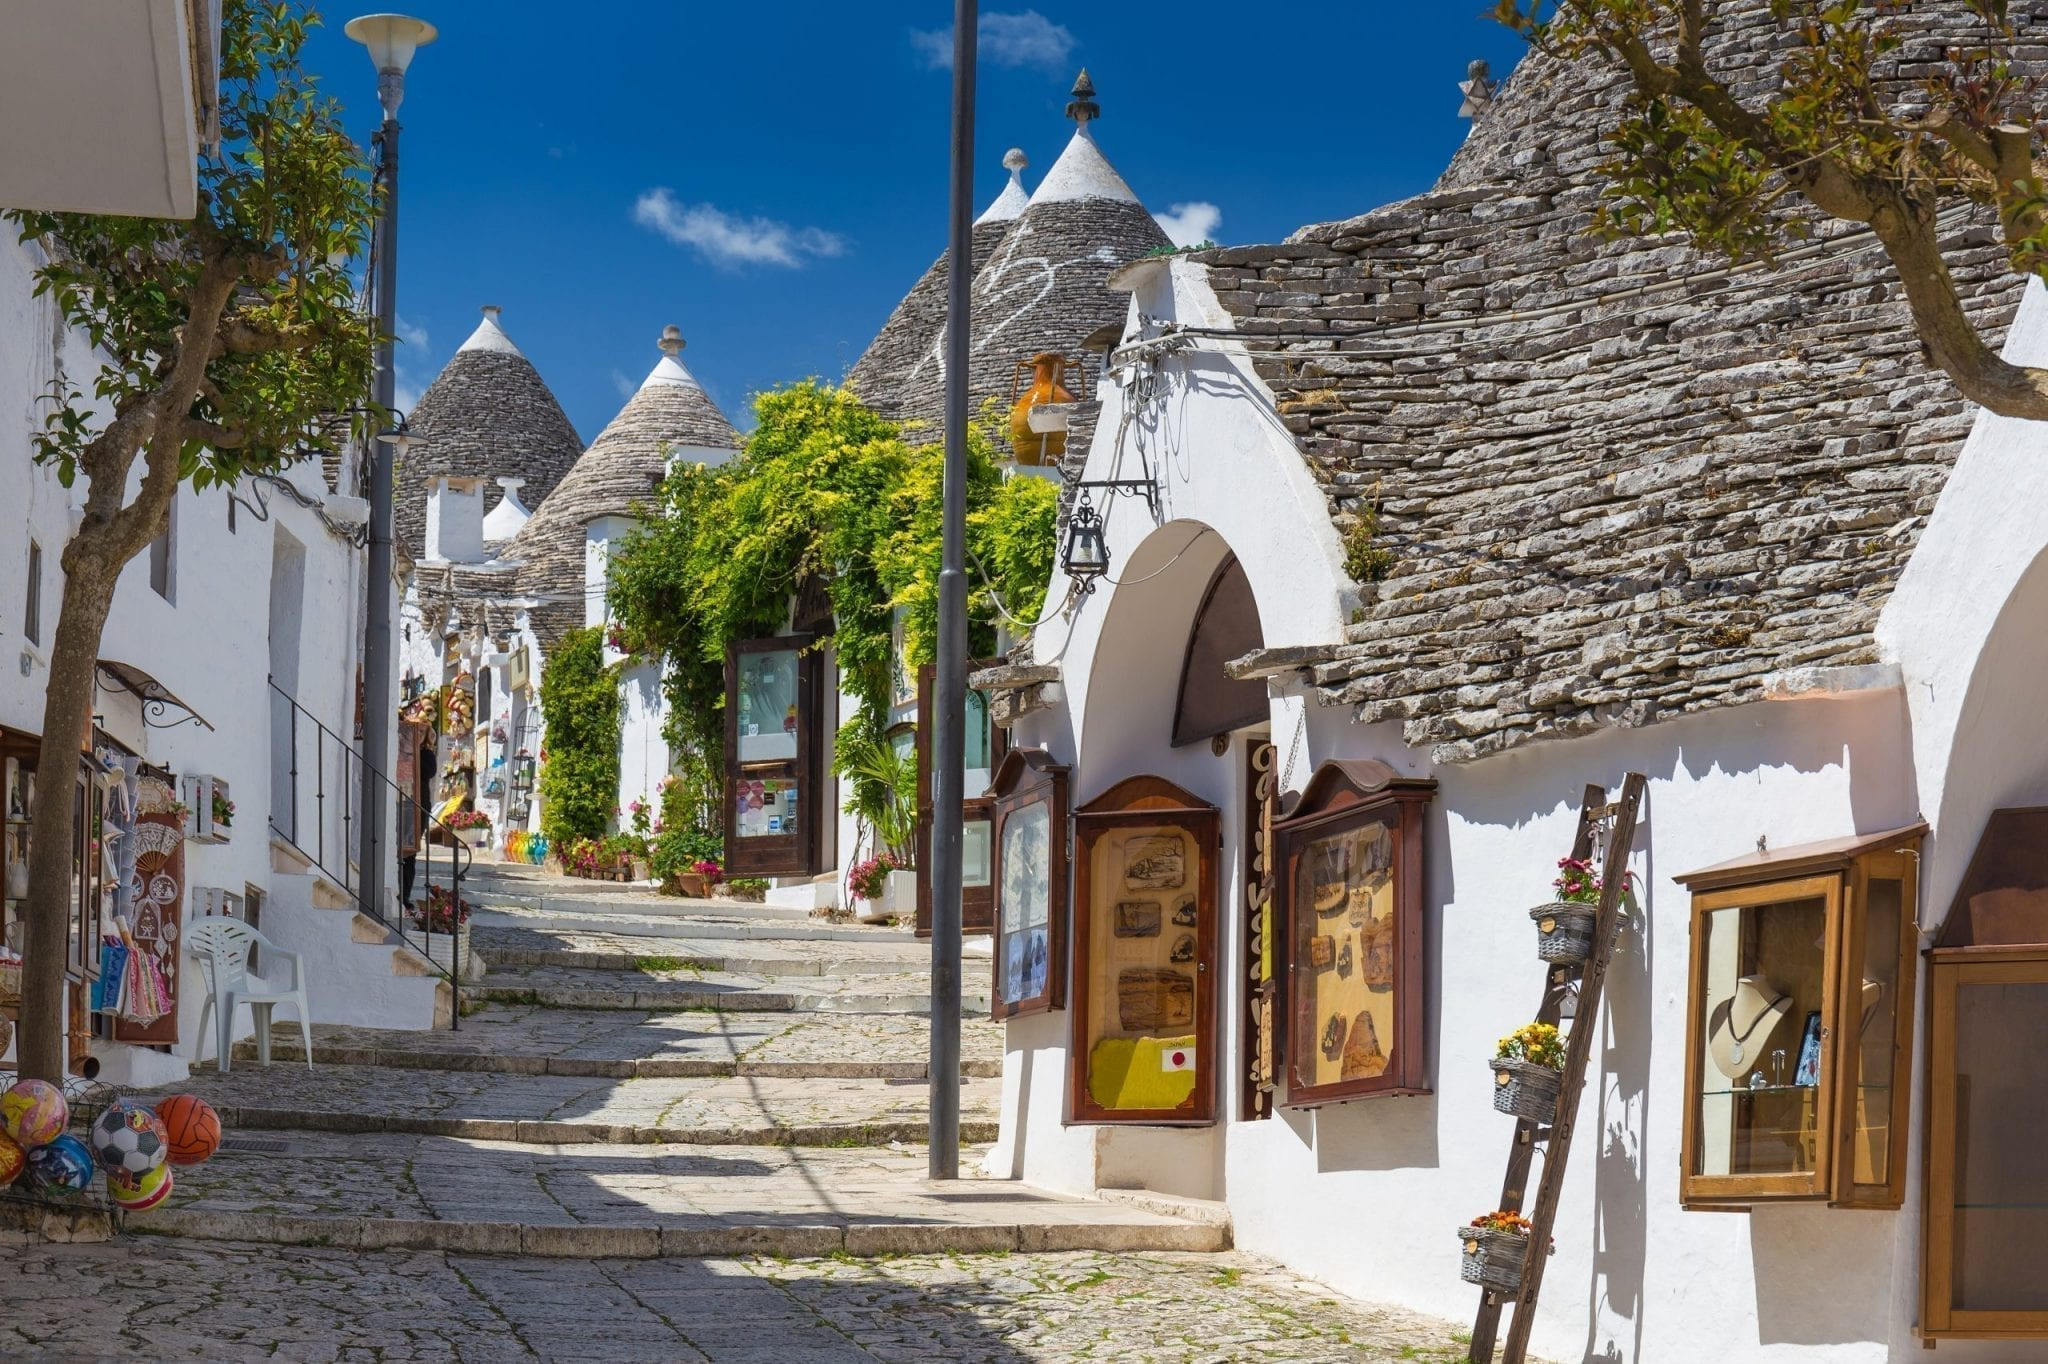 Small street in Alberobello surrounded by white trulli. this village in puglia is one of the best small towns in italy Italy lined with trulli, one of the best travel destinations in Italy